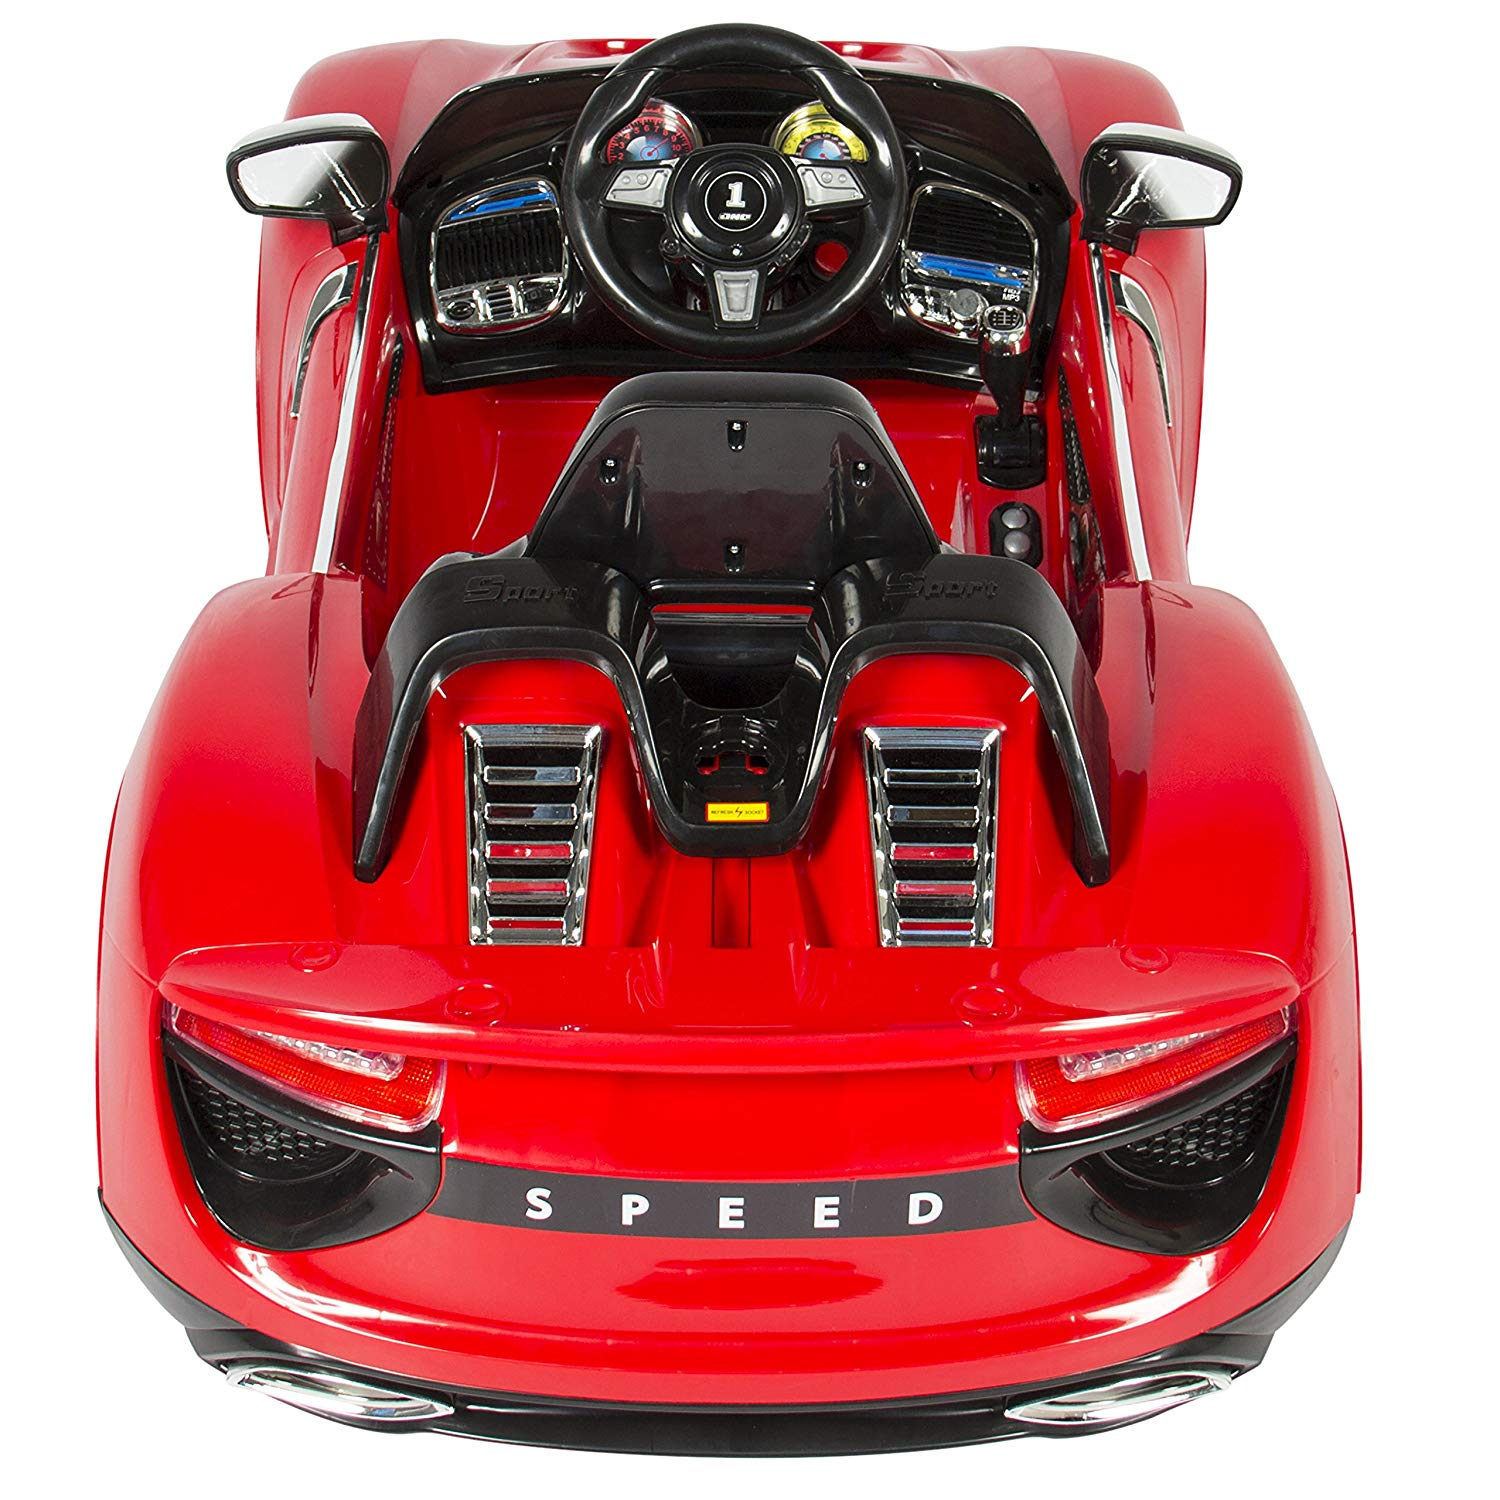 Kids Ride On Electric Cars Awesome Best Choice Products 12v Kids Battery Powered Remote